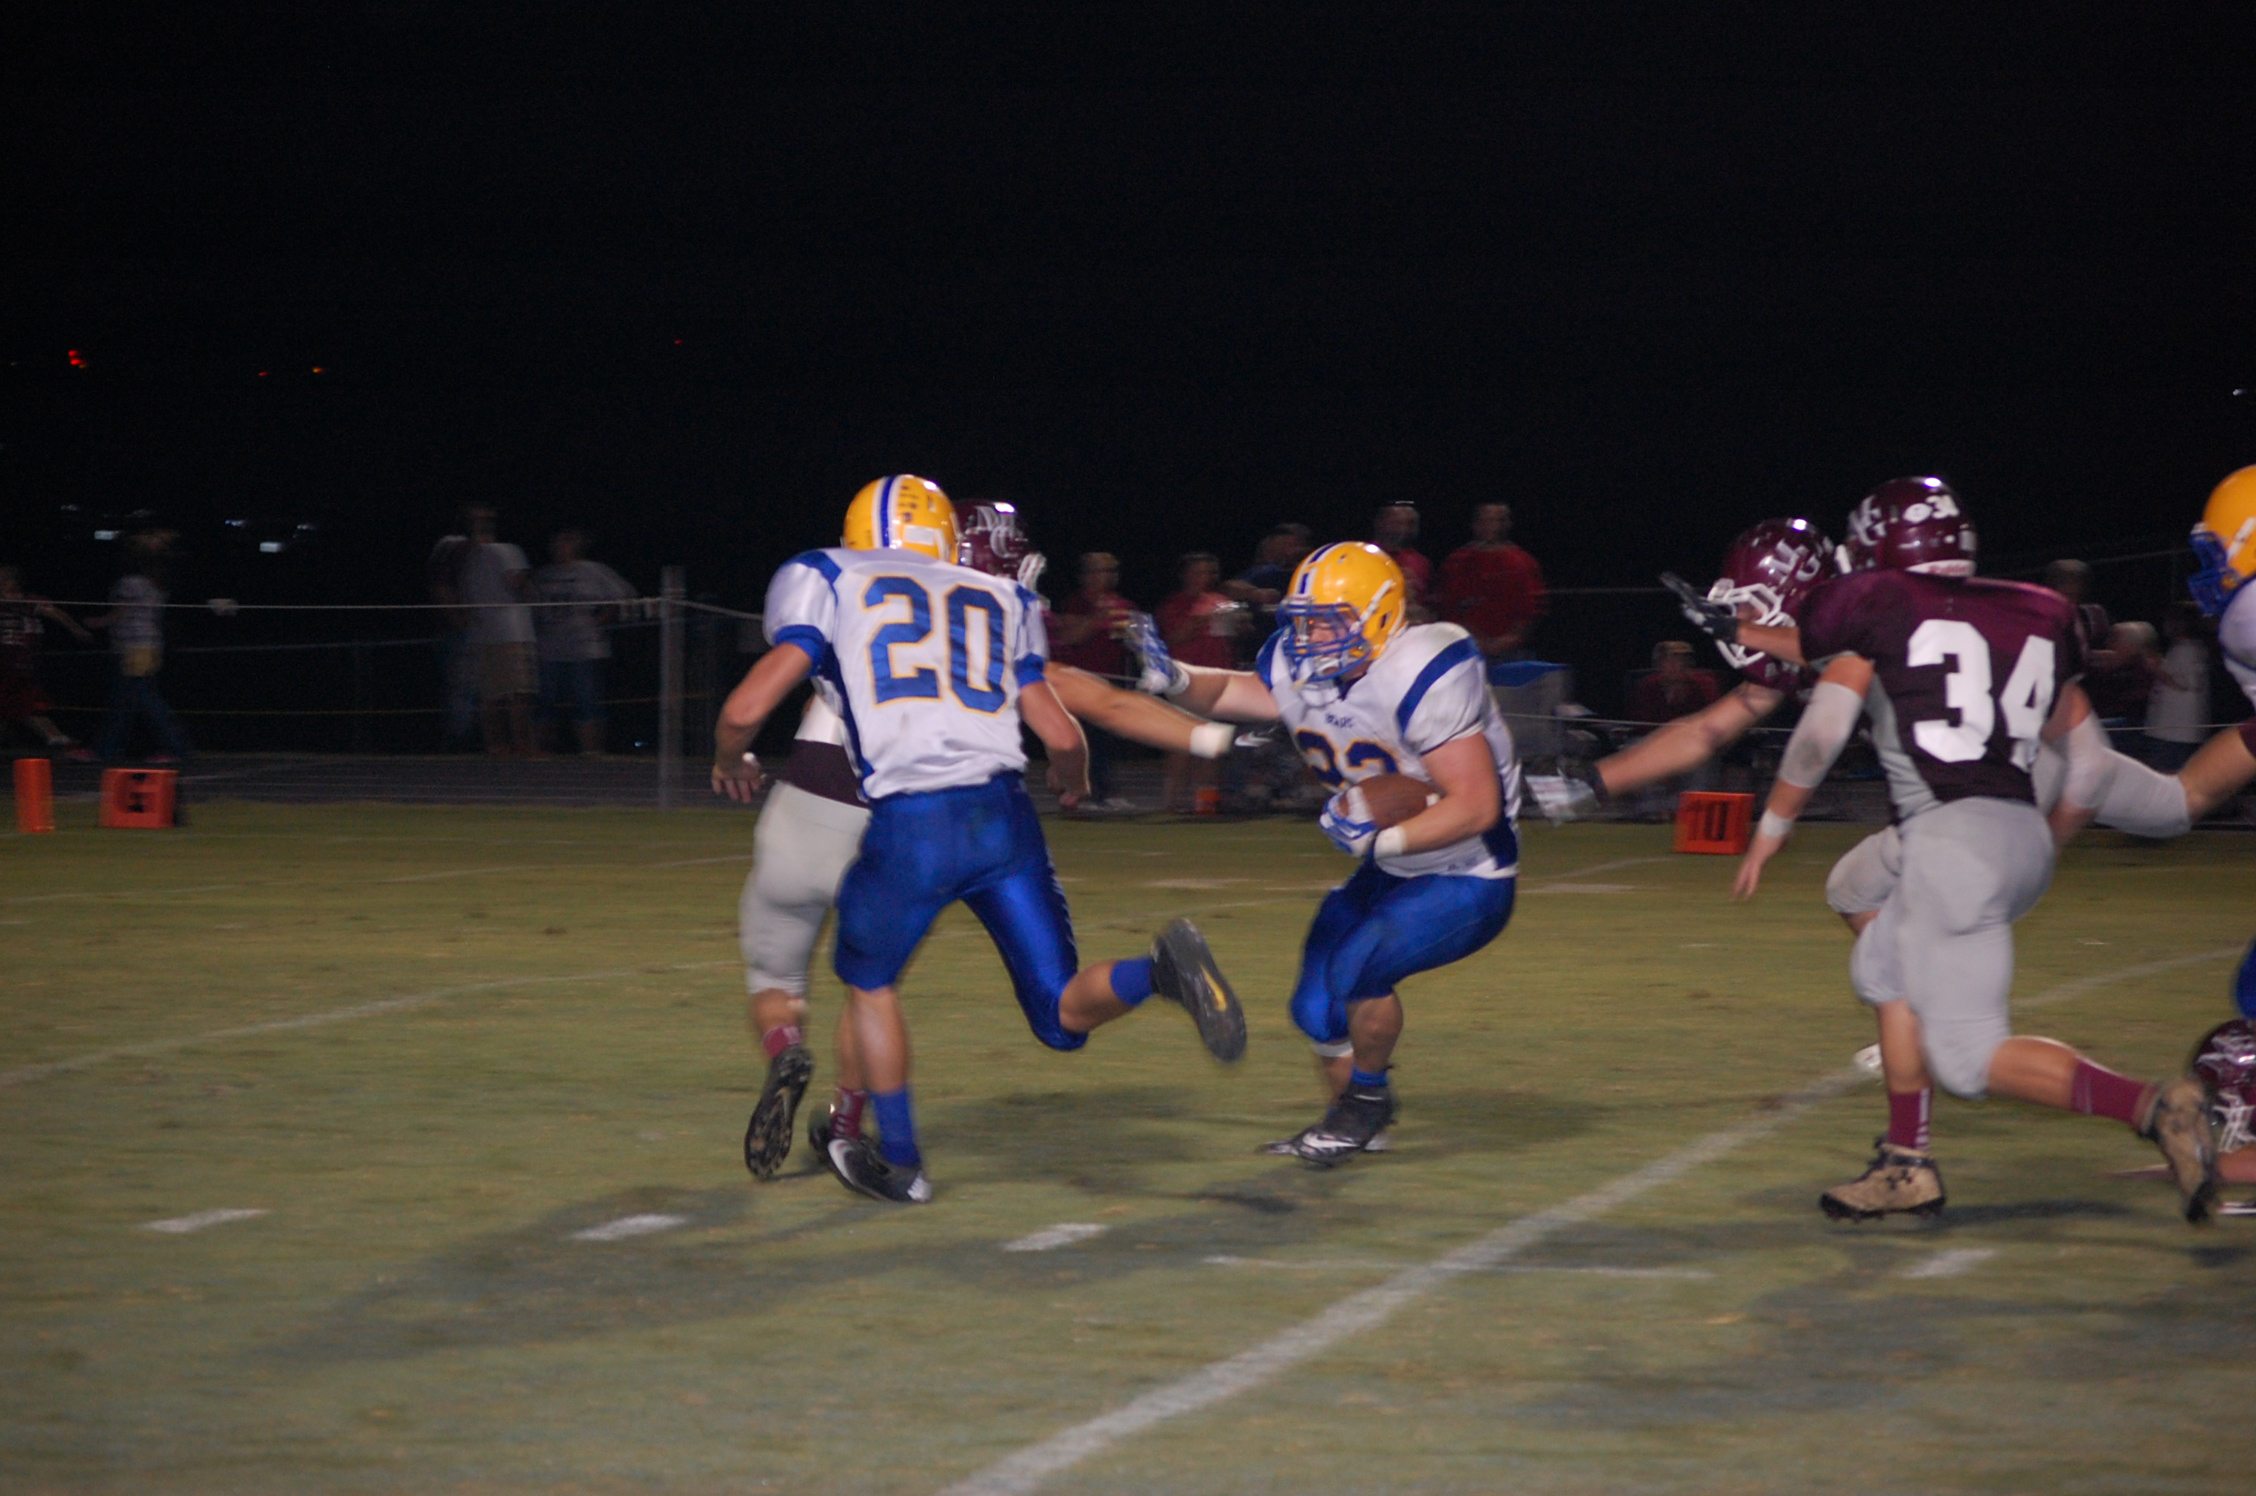 Chase Willis was Ava's leading rusher at Mtn. Grove with 83 yards on 11 carries, including this one on Ava's third-quarter scoring drive. Jesse Dean (20) moves in to throw a block for the ball carrier.